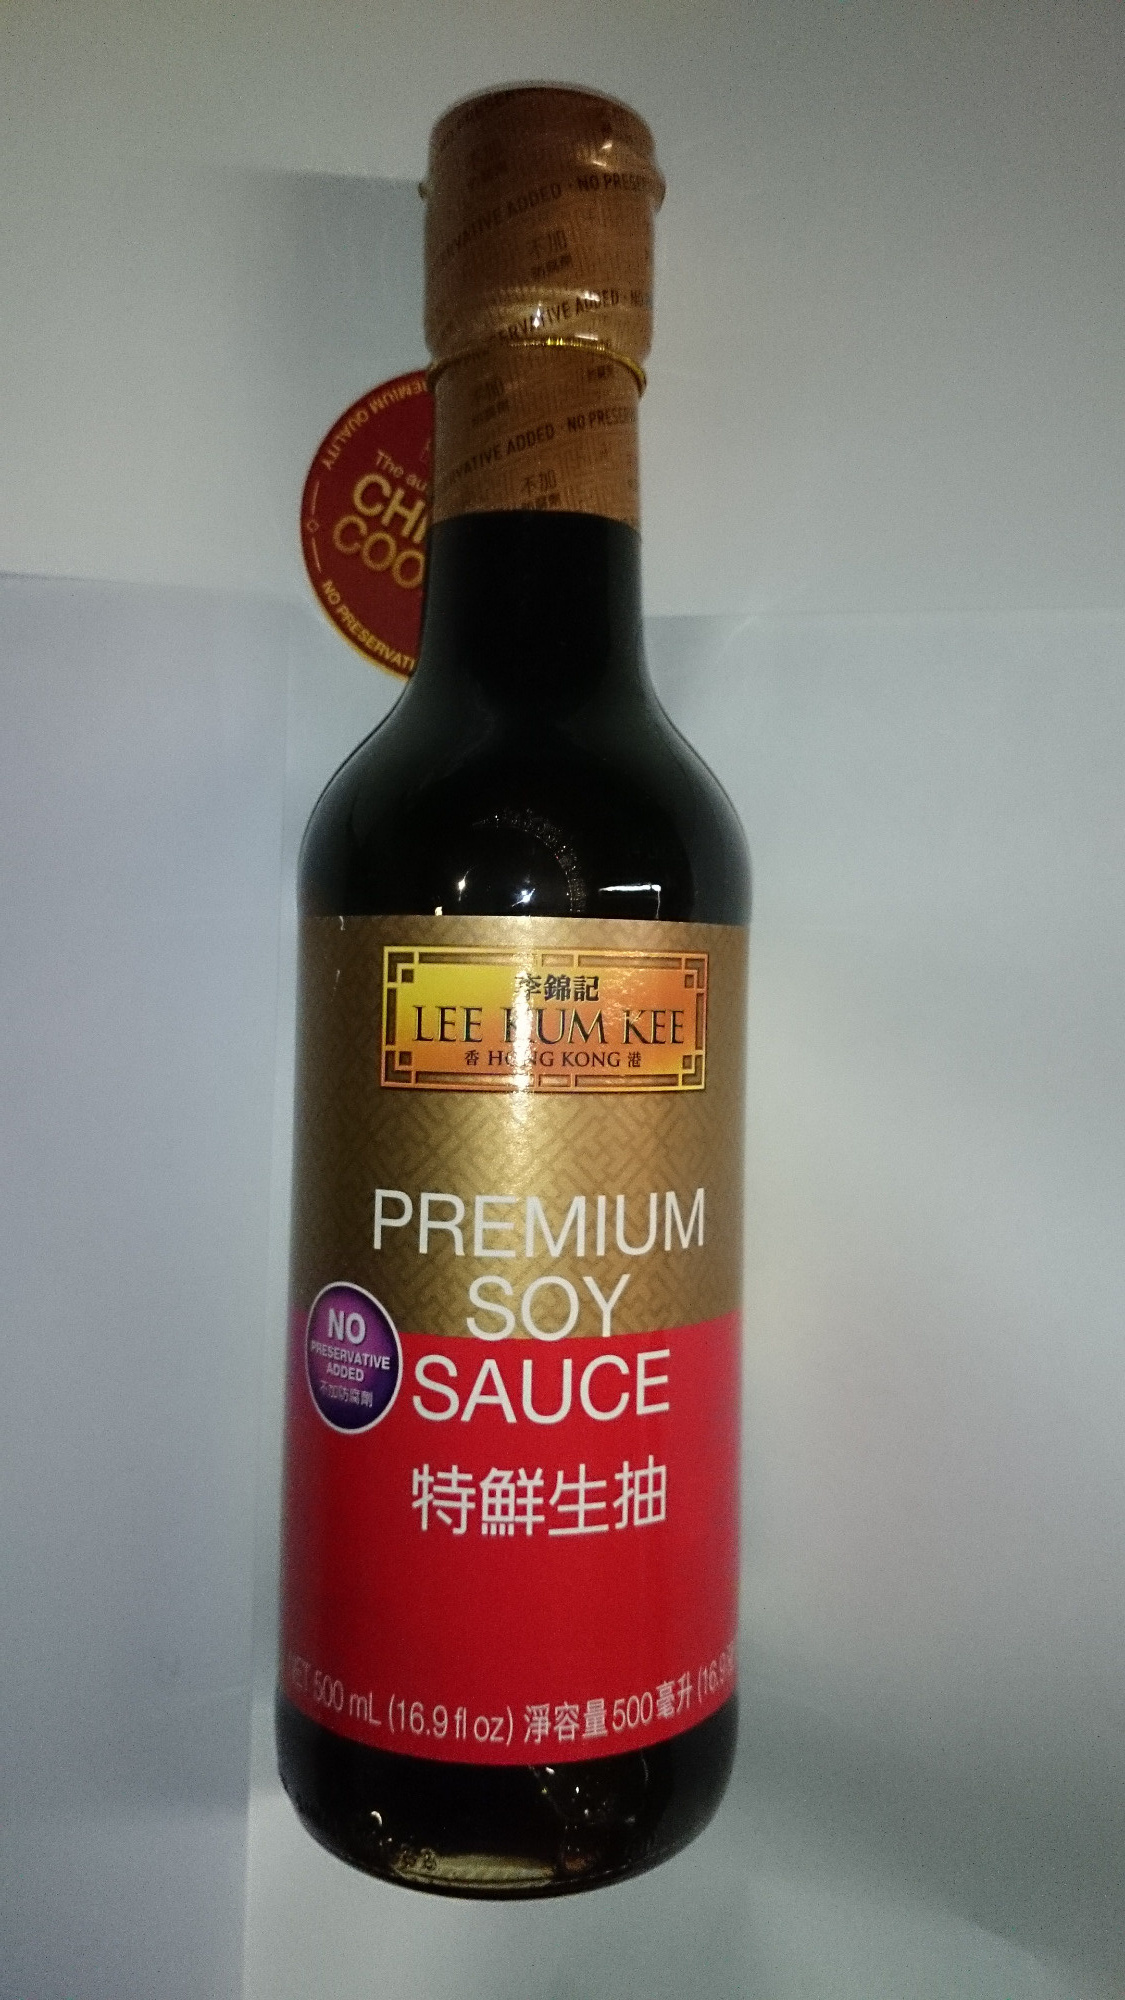 Lee Kum Kee Premium Soy Sauce - Ingredients